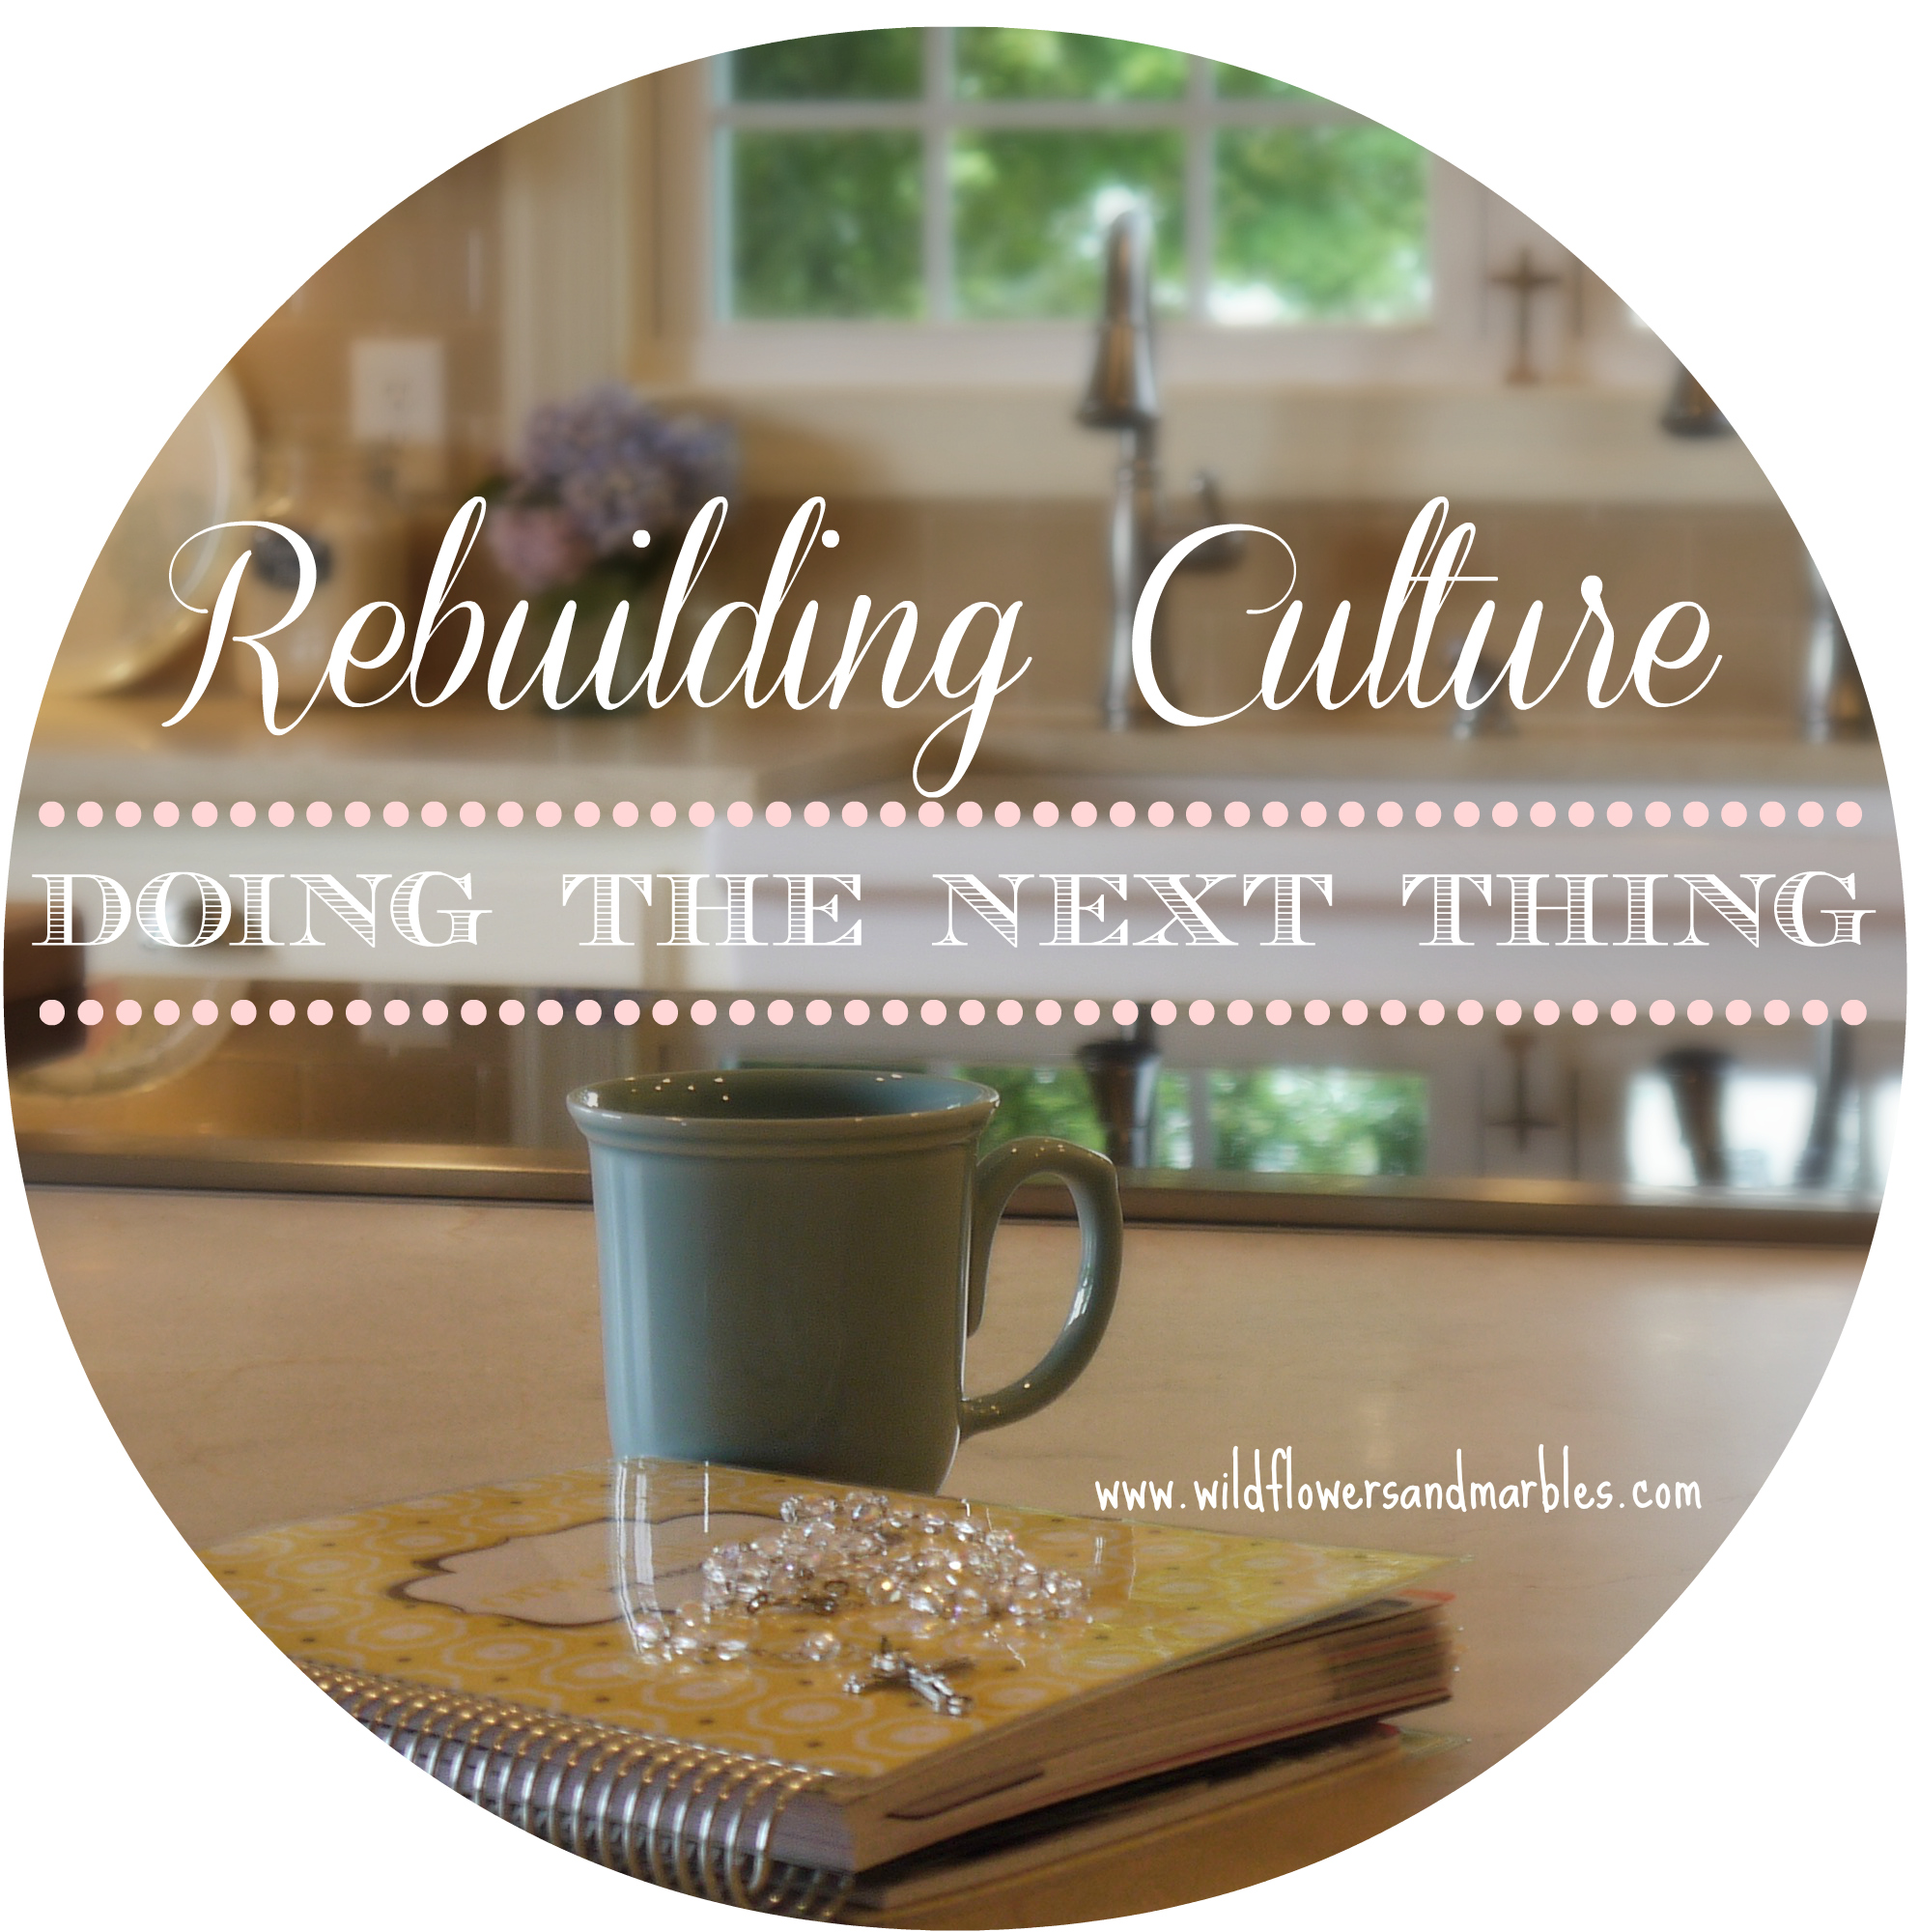 Rebuilding culture is a job for the family!  And here's the great part - we can rebuild culture by simply doing the next thing! Click the image and let's encourage each other!